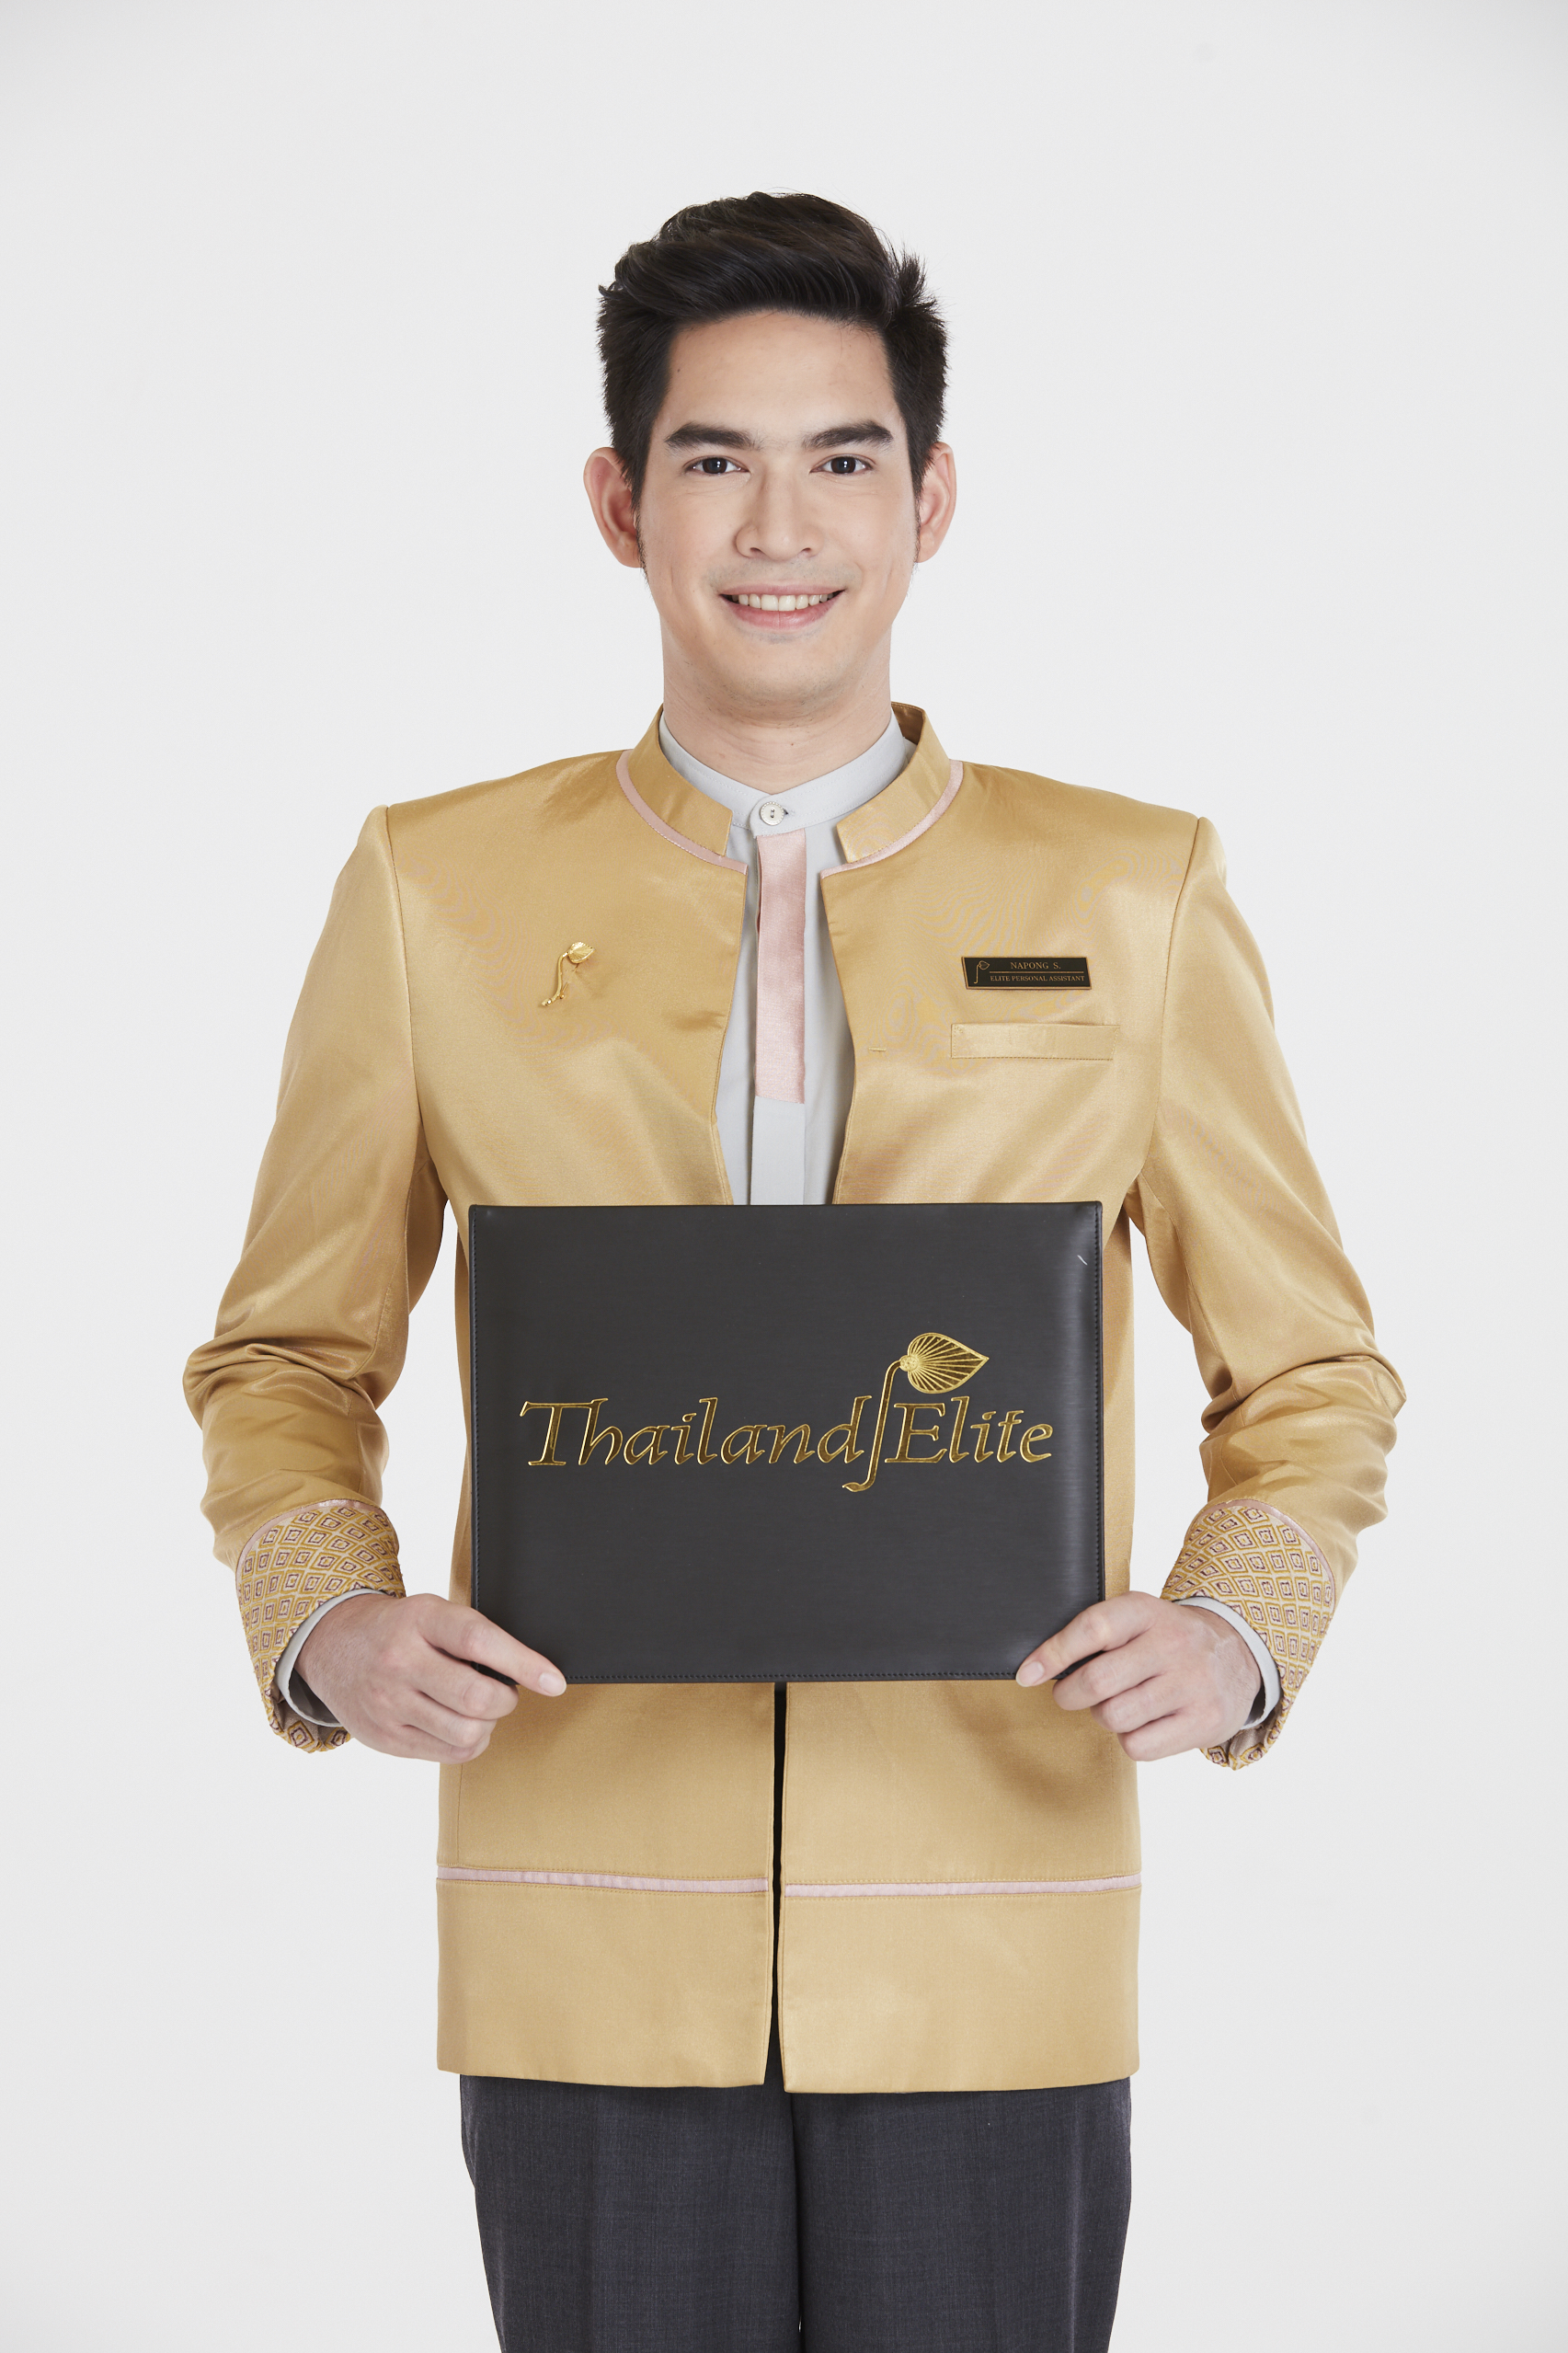 Our team makes the application process quick and easy, whether you are in Thailand or abroad. All you need to do is to provide us with a copy of your passport, digital photo and an application form that filled and signed by the applicant and we will complete the rest of the application process for you.